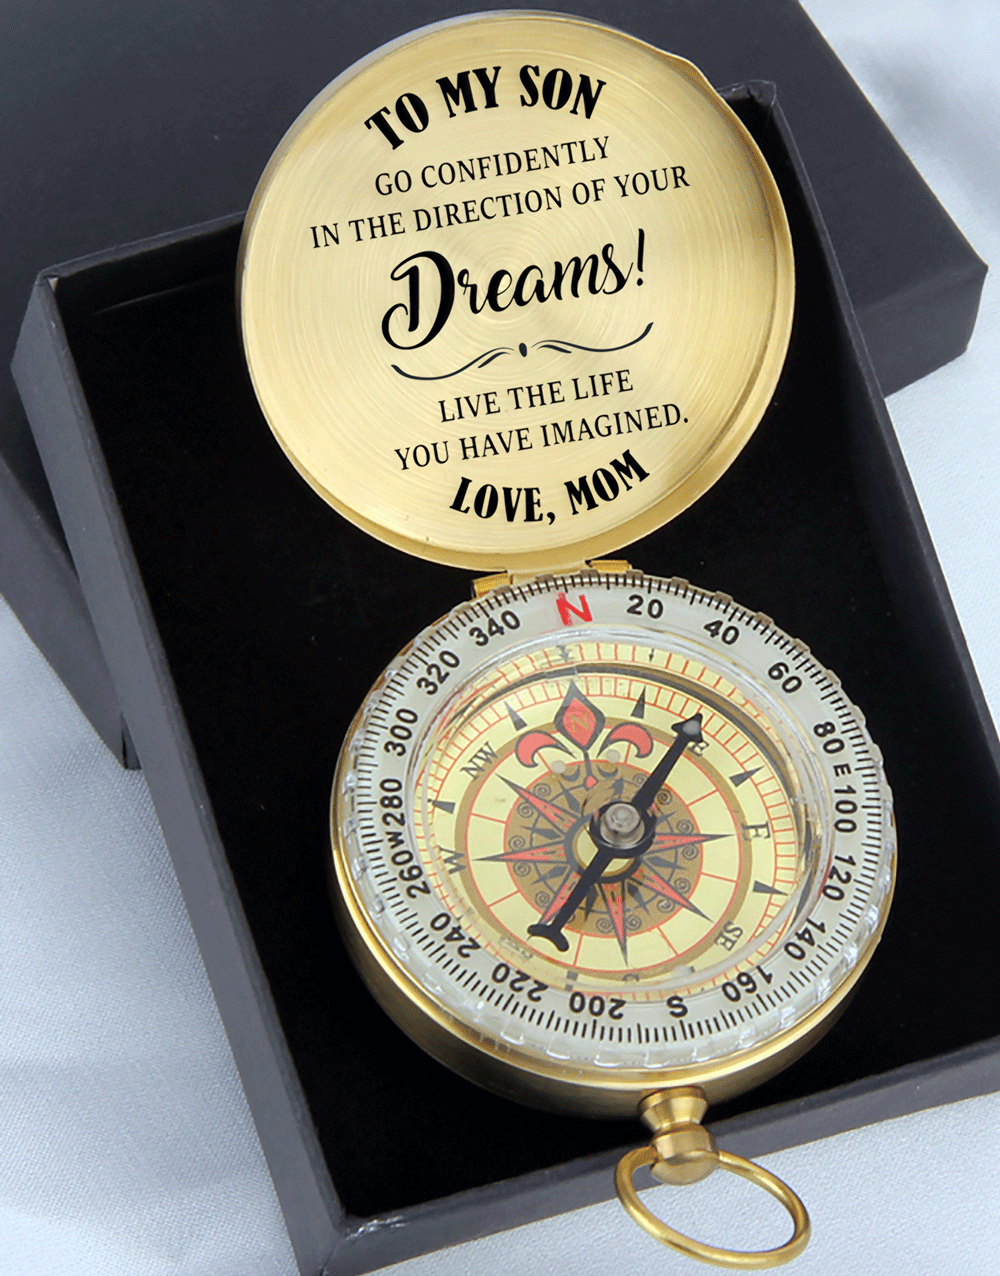 Mom to Son - Go Confidently in The Direct of Your Dreams - Compass